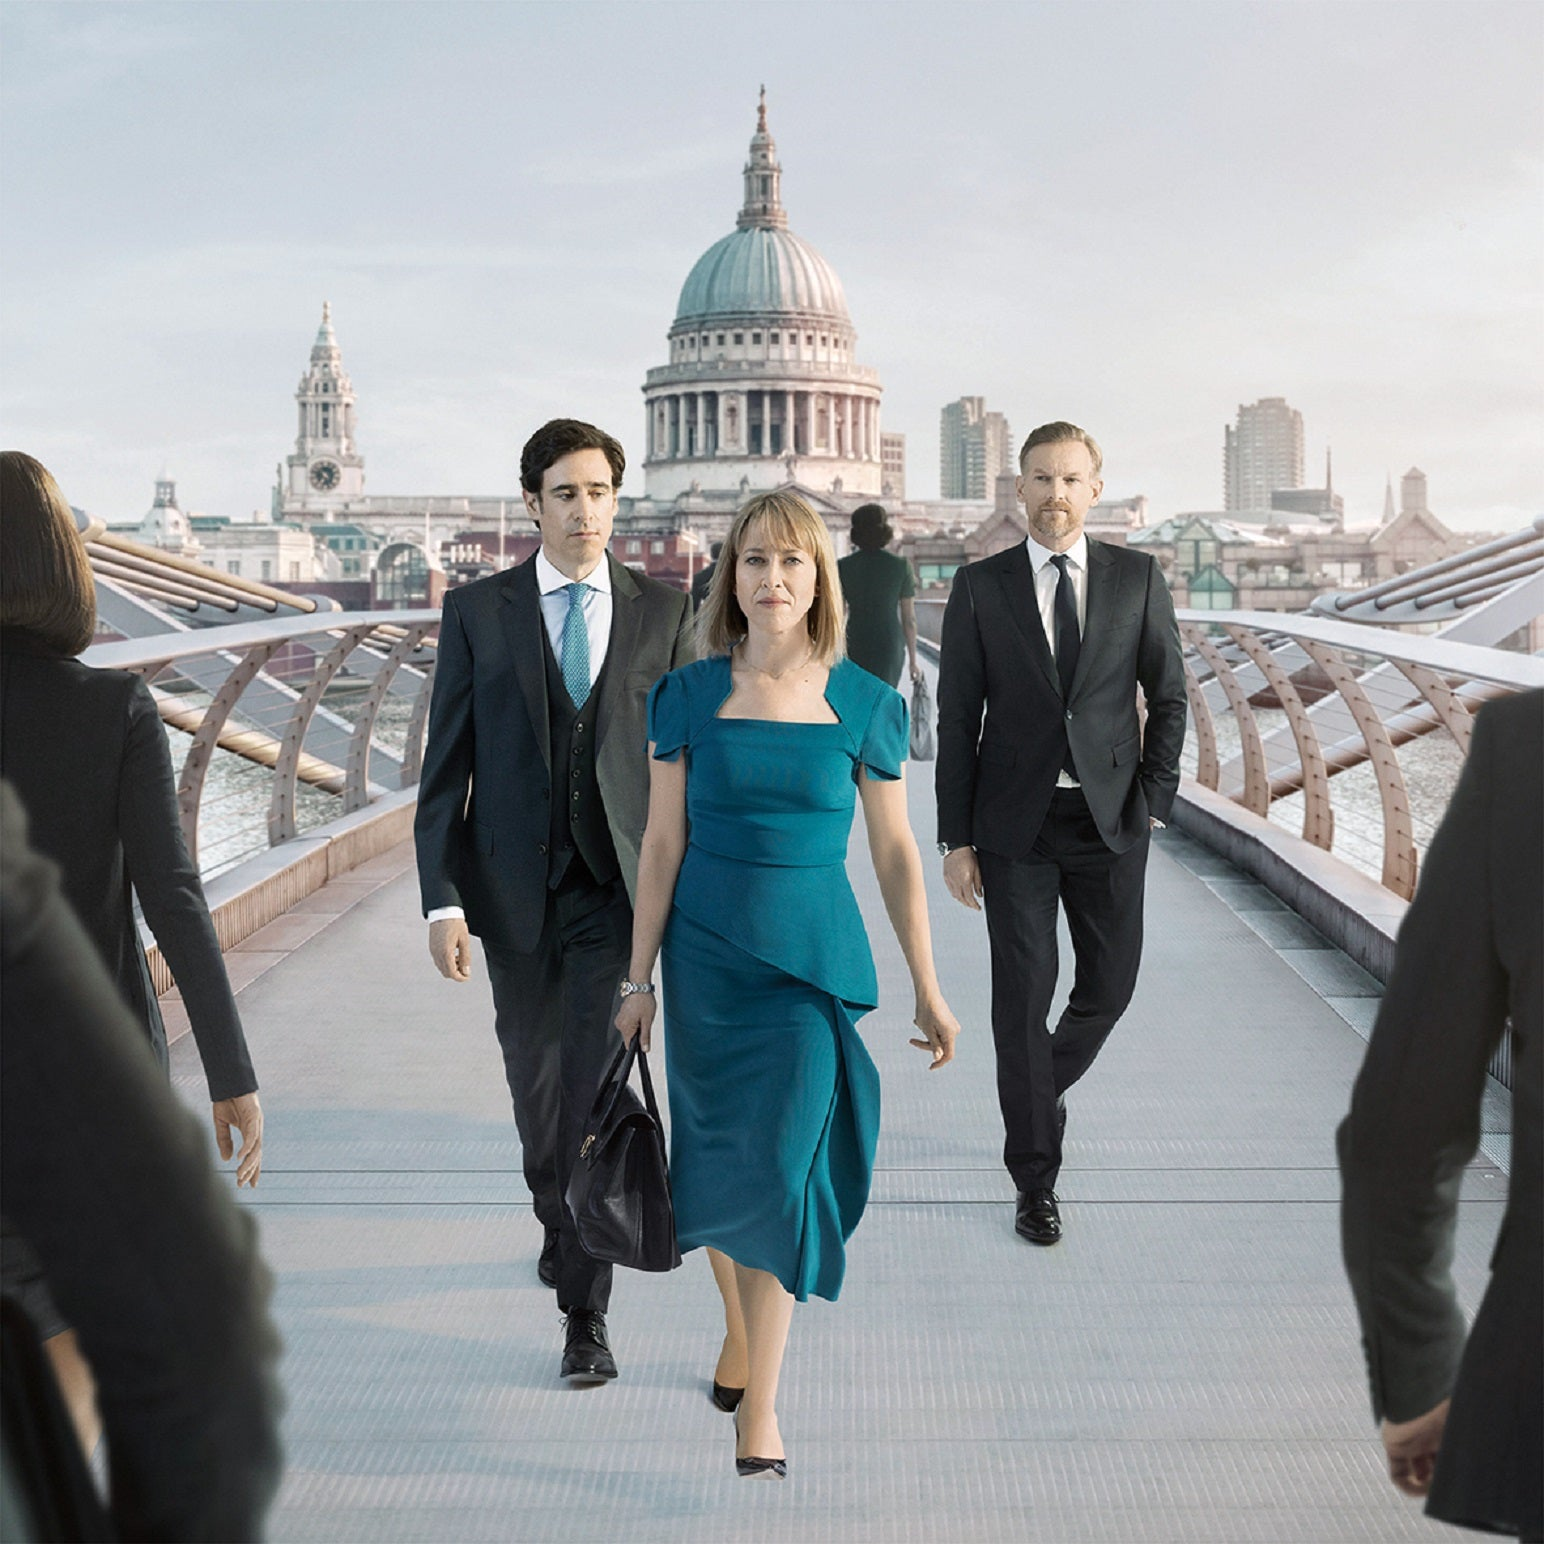 BBC One's The Split is more than just melodrama